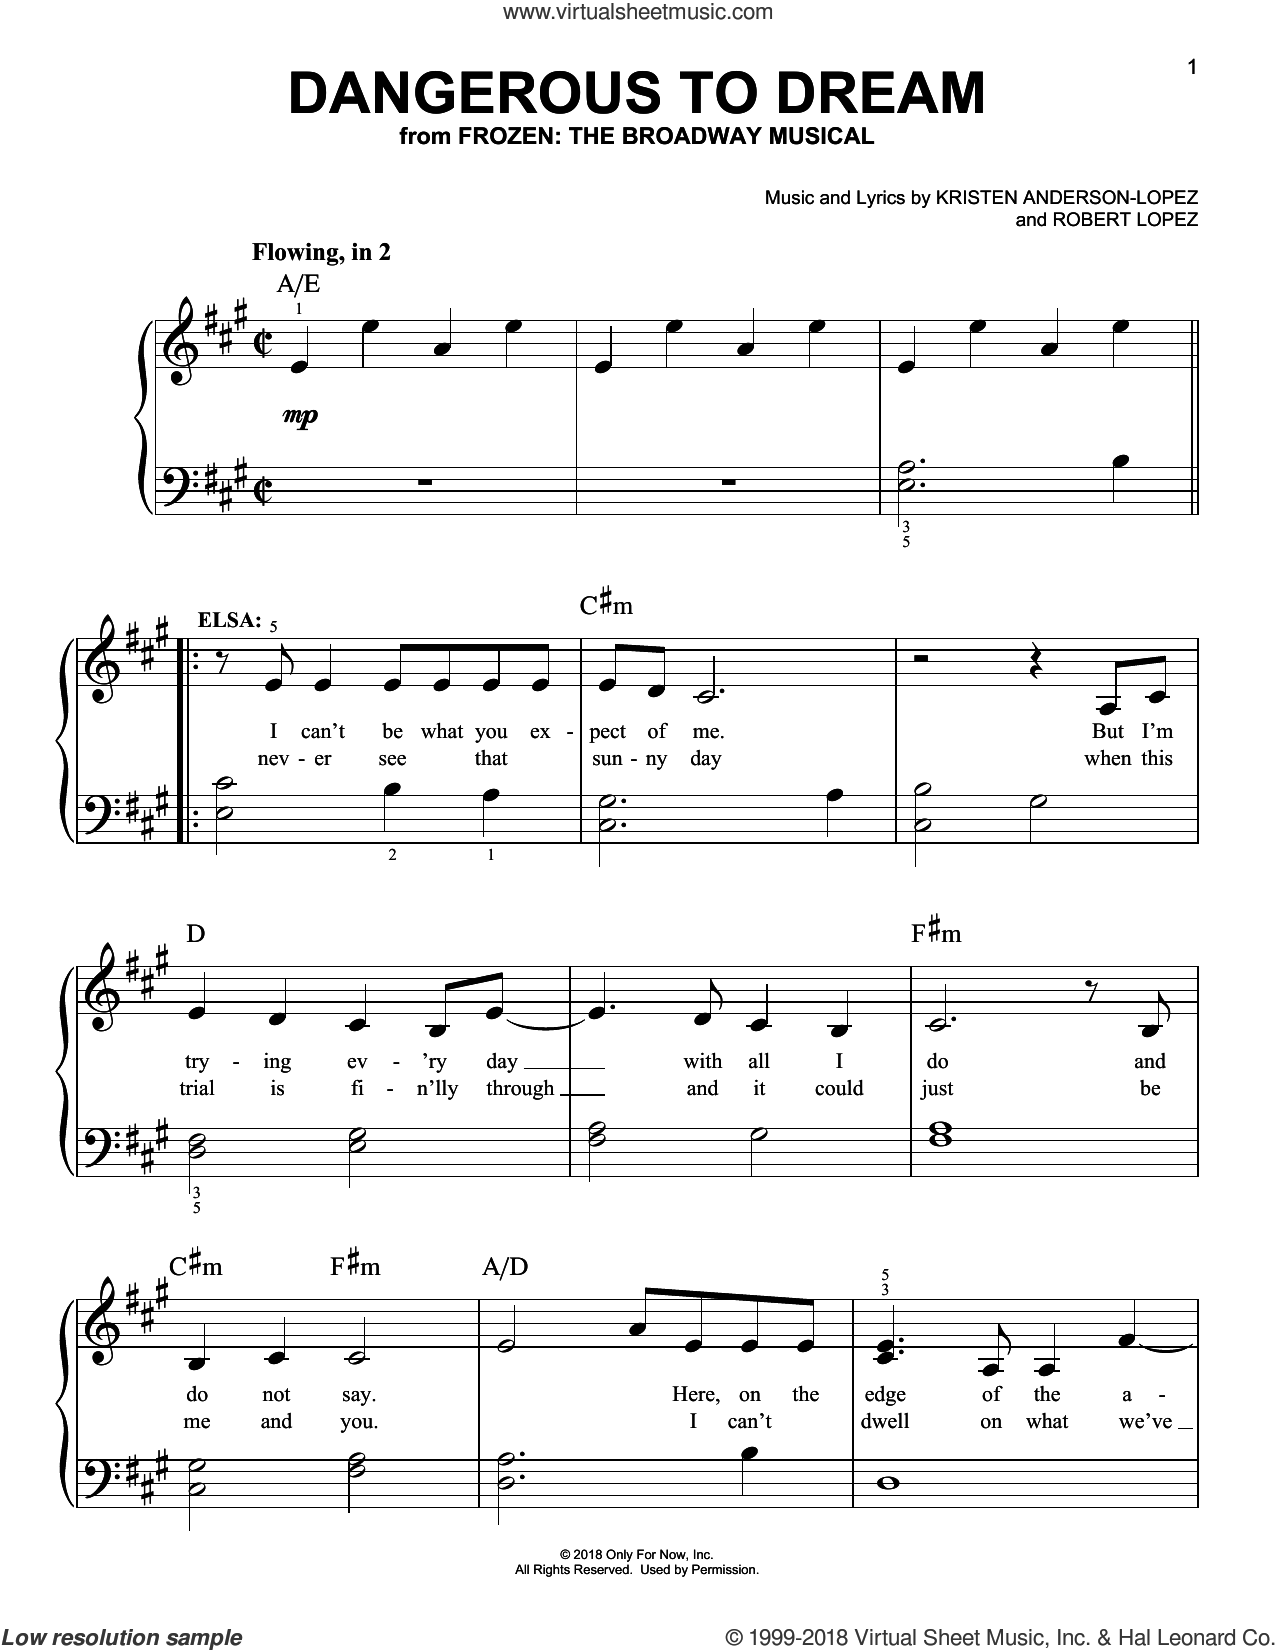 Dangerous To Dream sheet music for piano solo by Robert Lopez, Kristen Anderson-Lopez and Kristen Anderson-Lopez & Robert Lopez, easy skill level